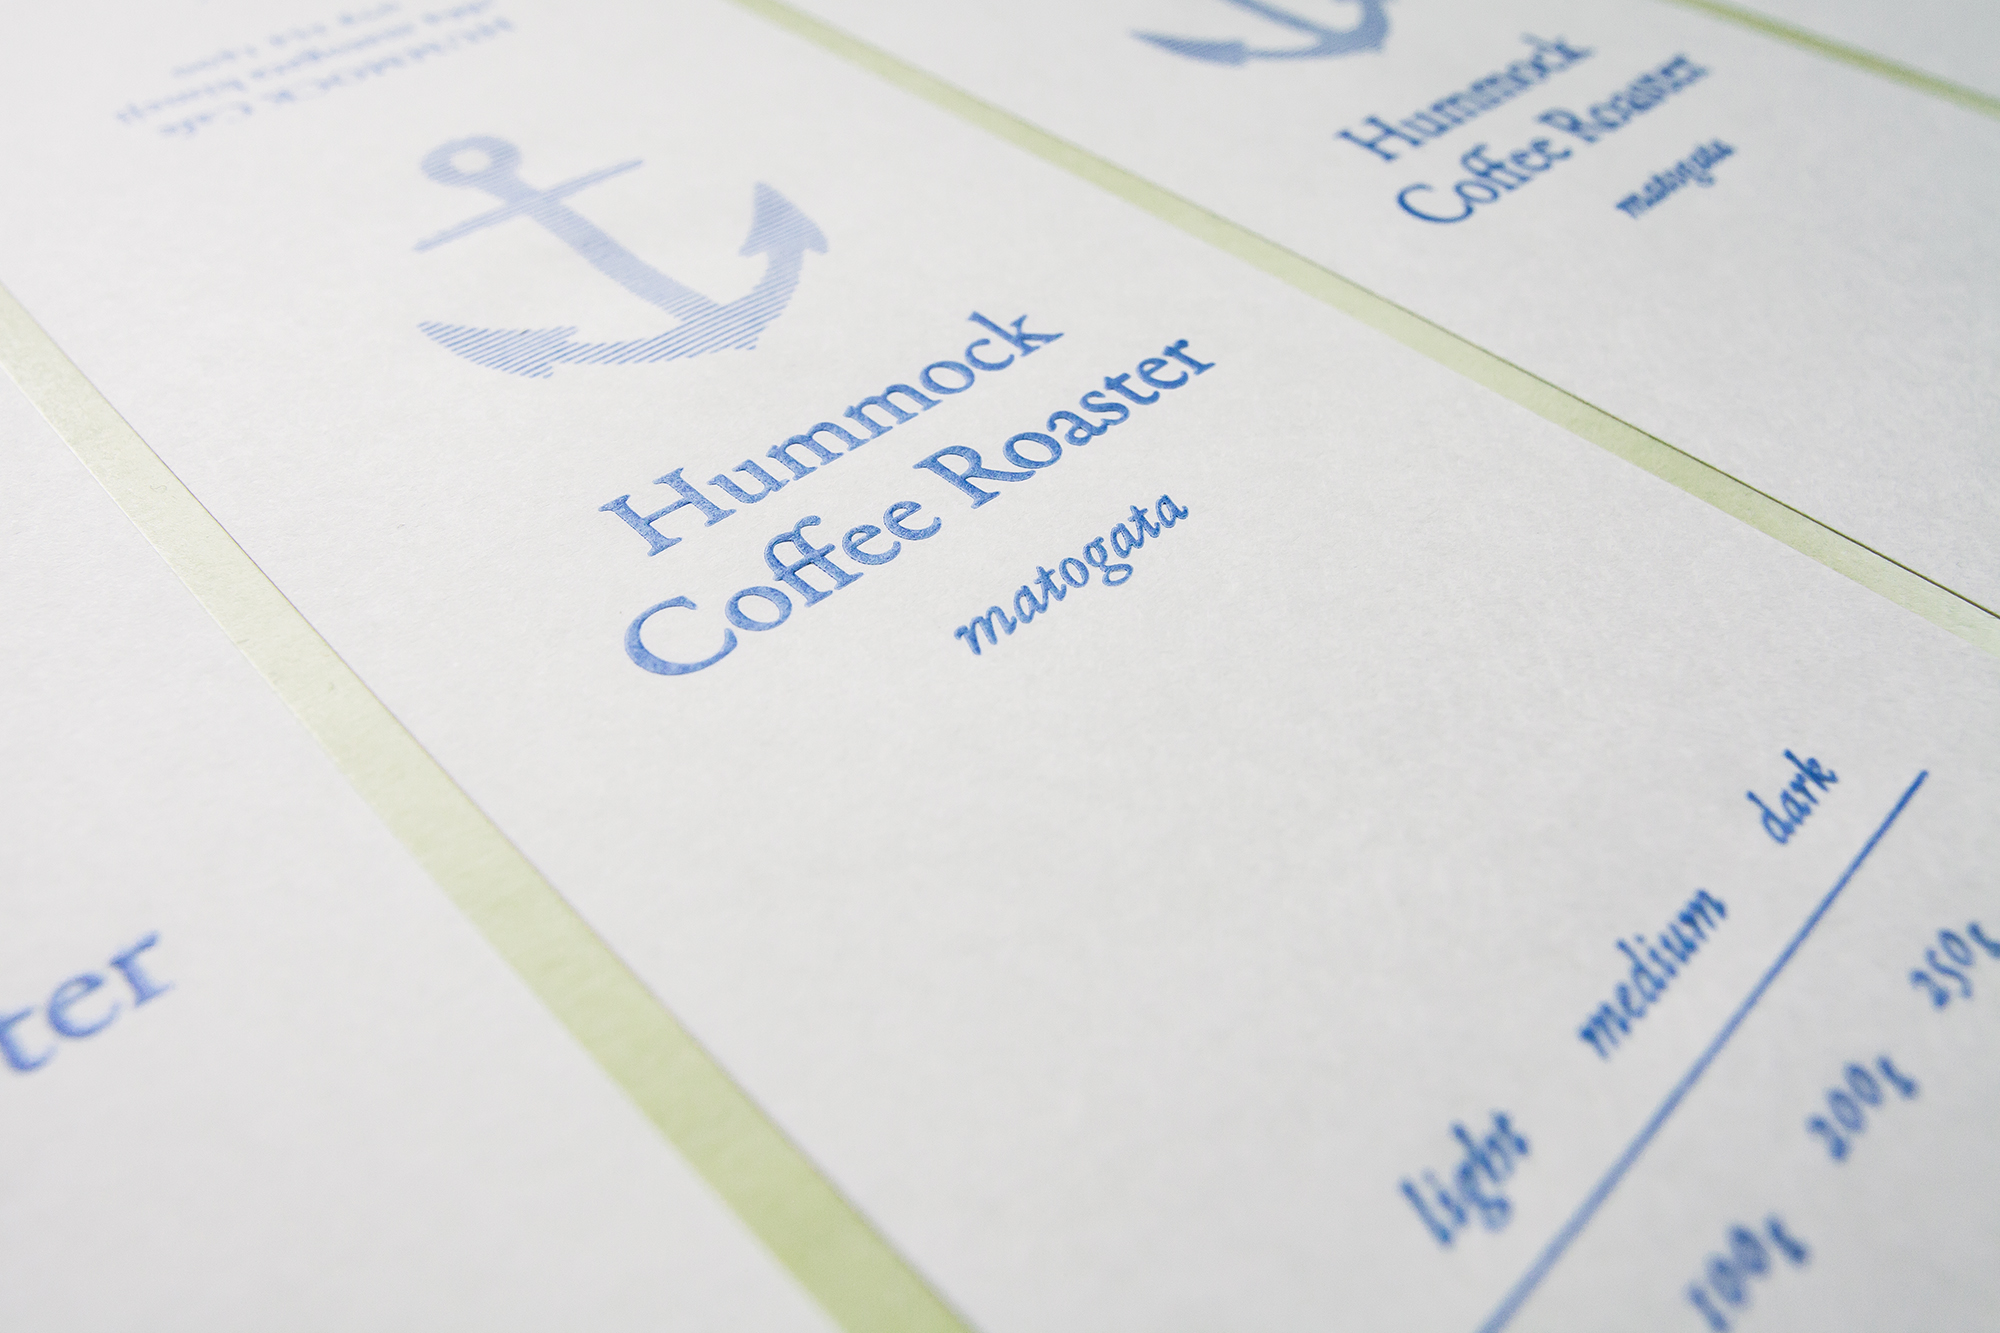 Hummock Coffee Roaster |Label Sticker|パッケージデザイン